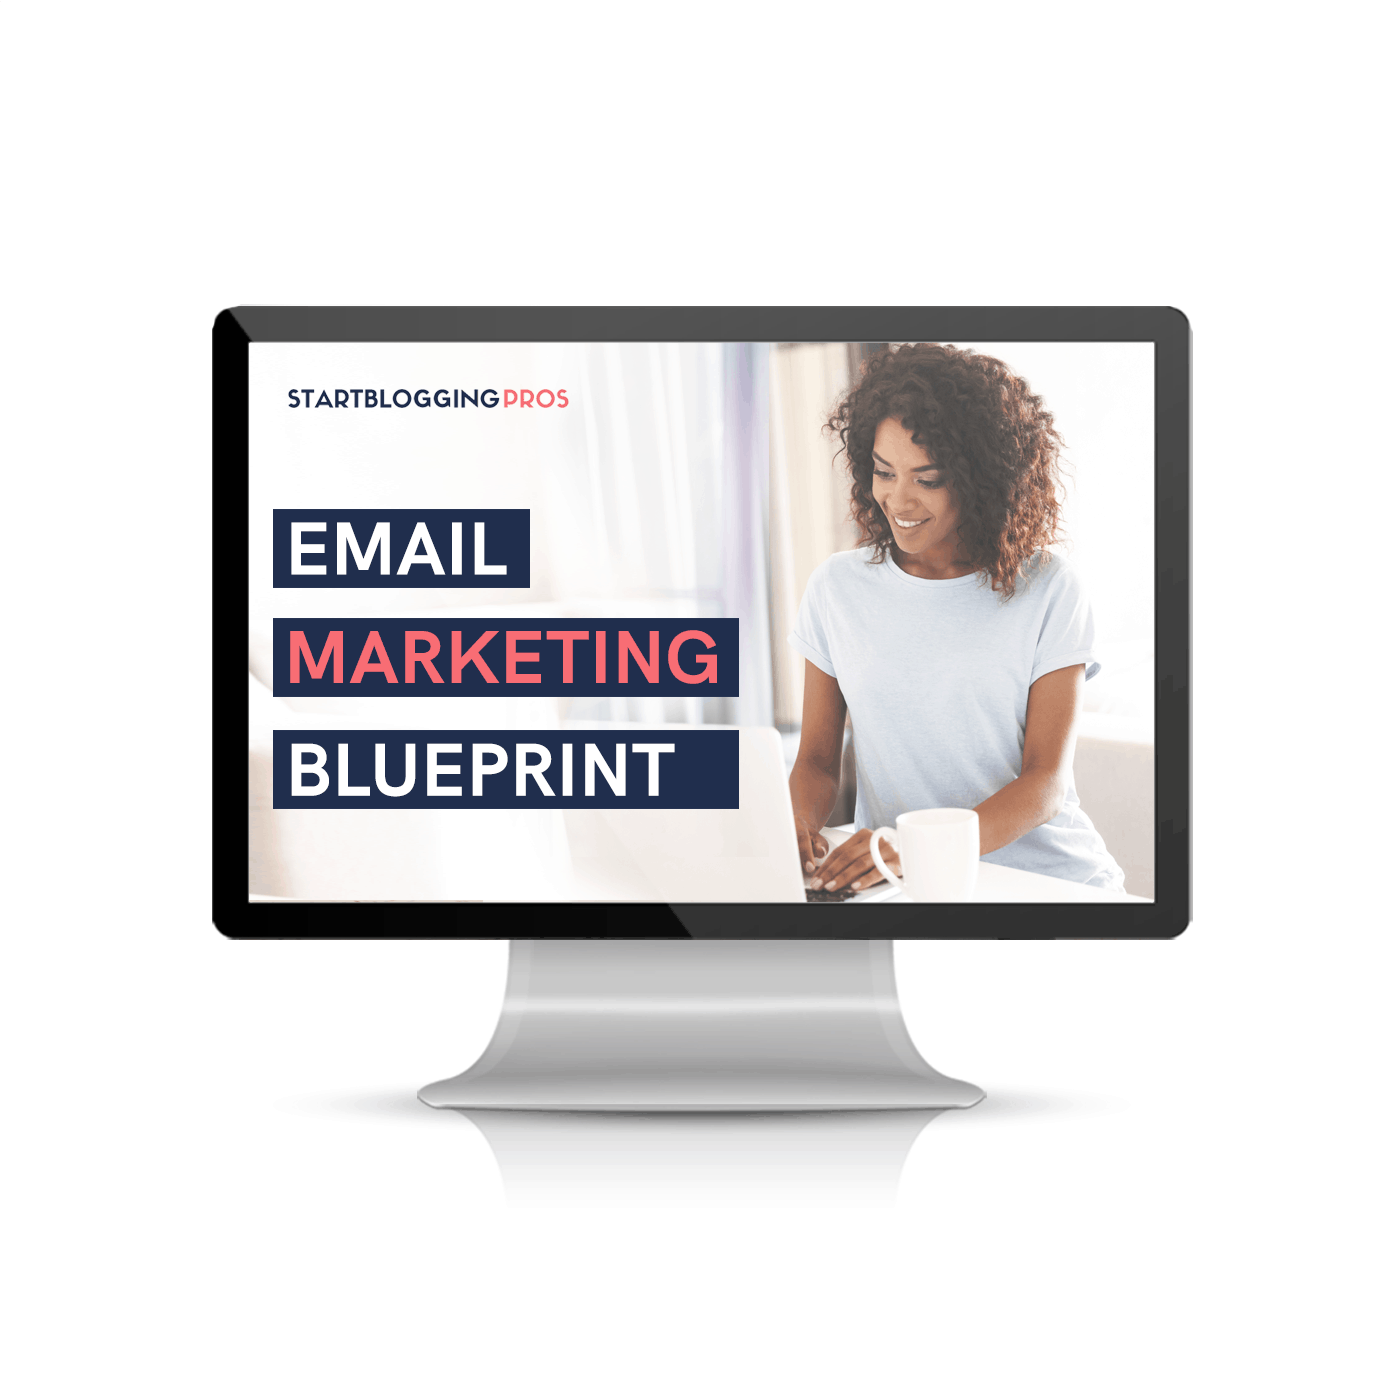 Email Marketing And List Building Blueprint Course